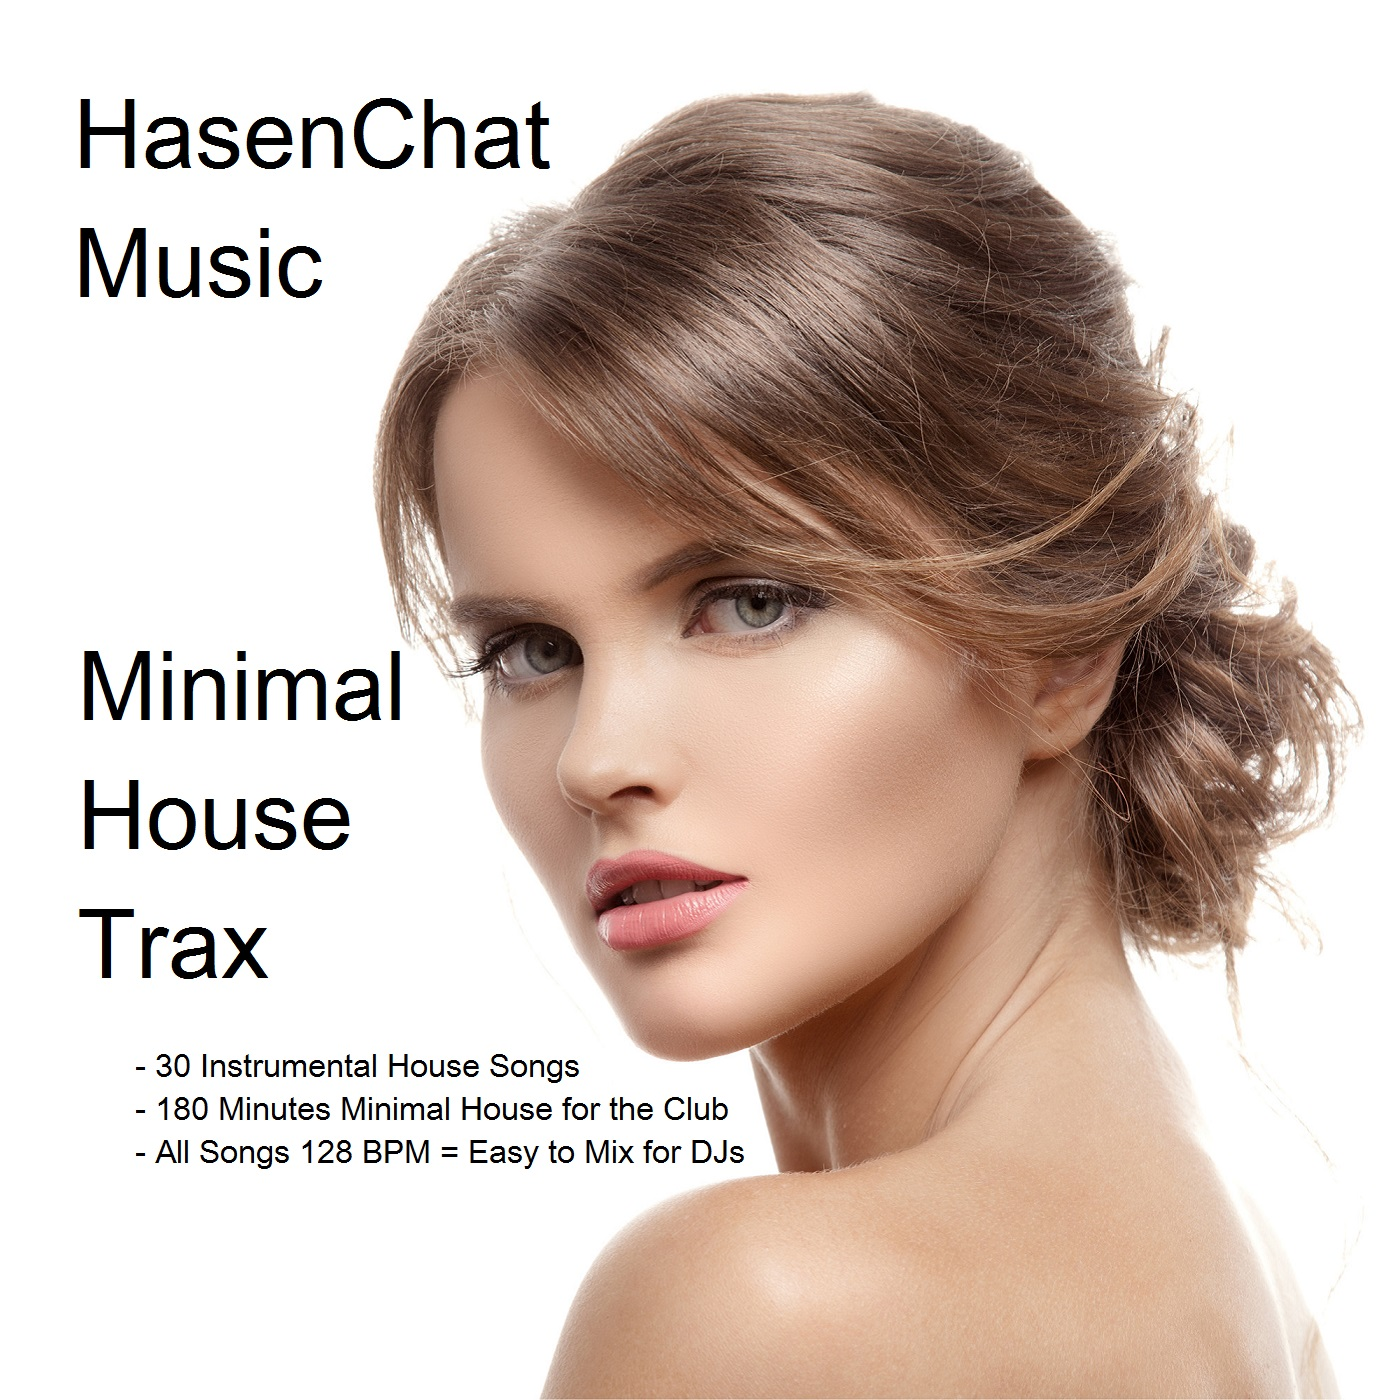 HasenChat Music - Minimal House Trax